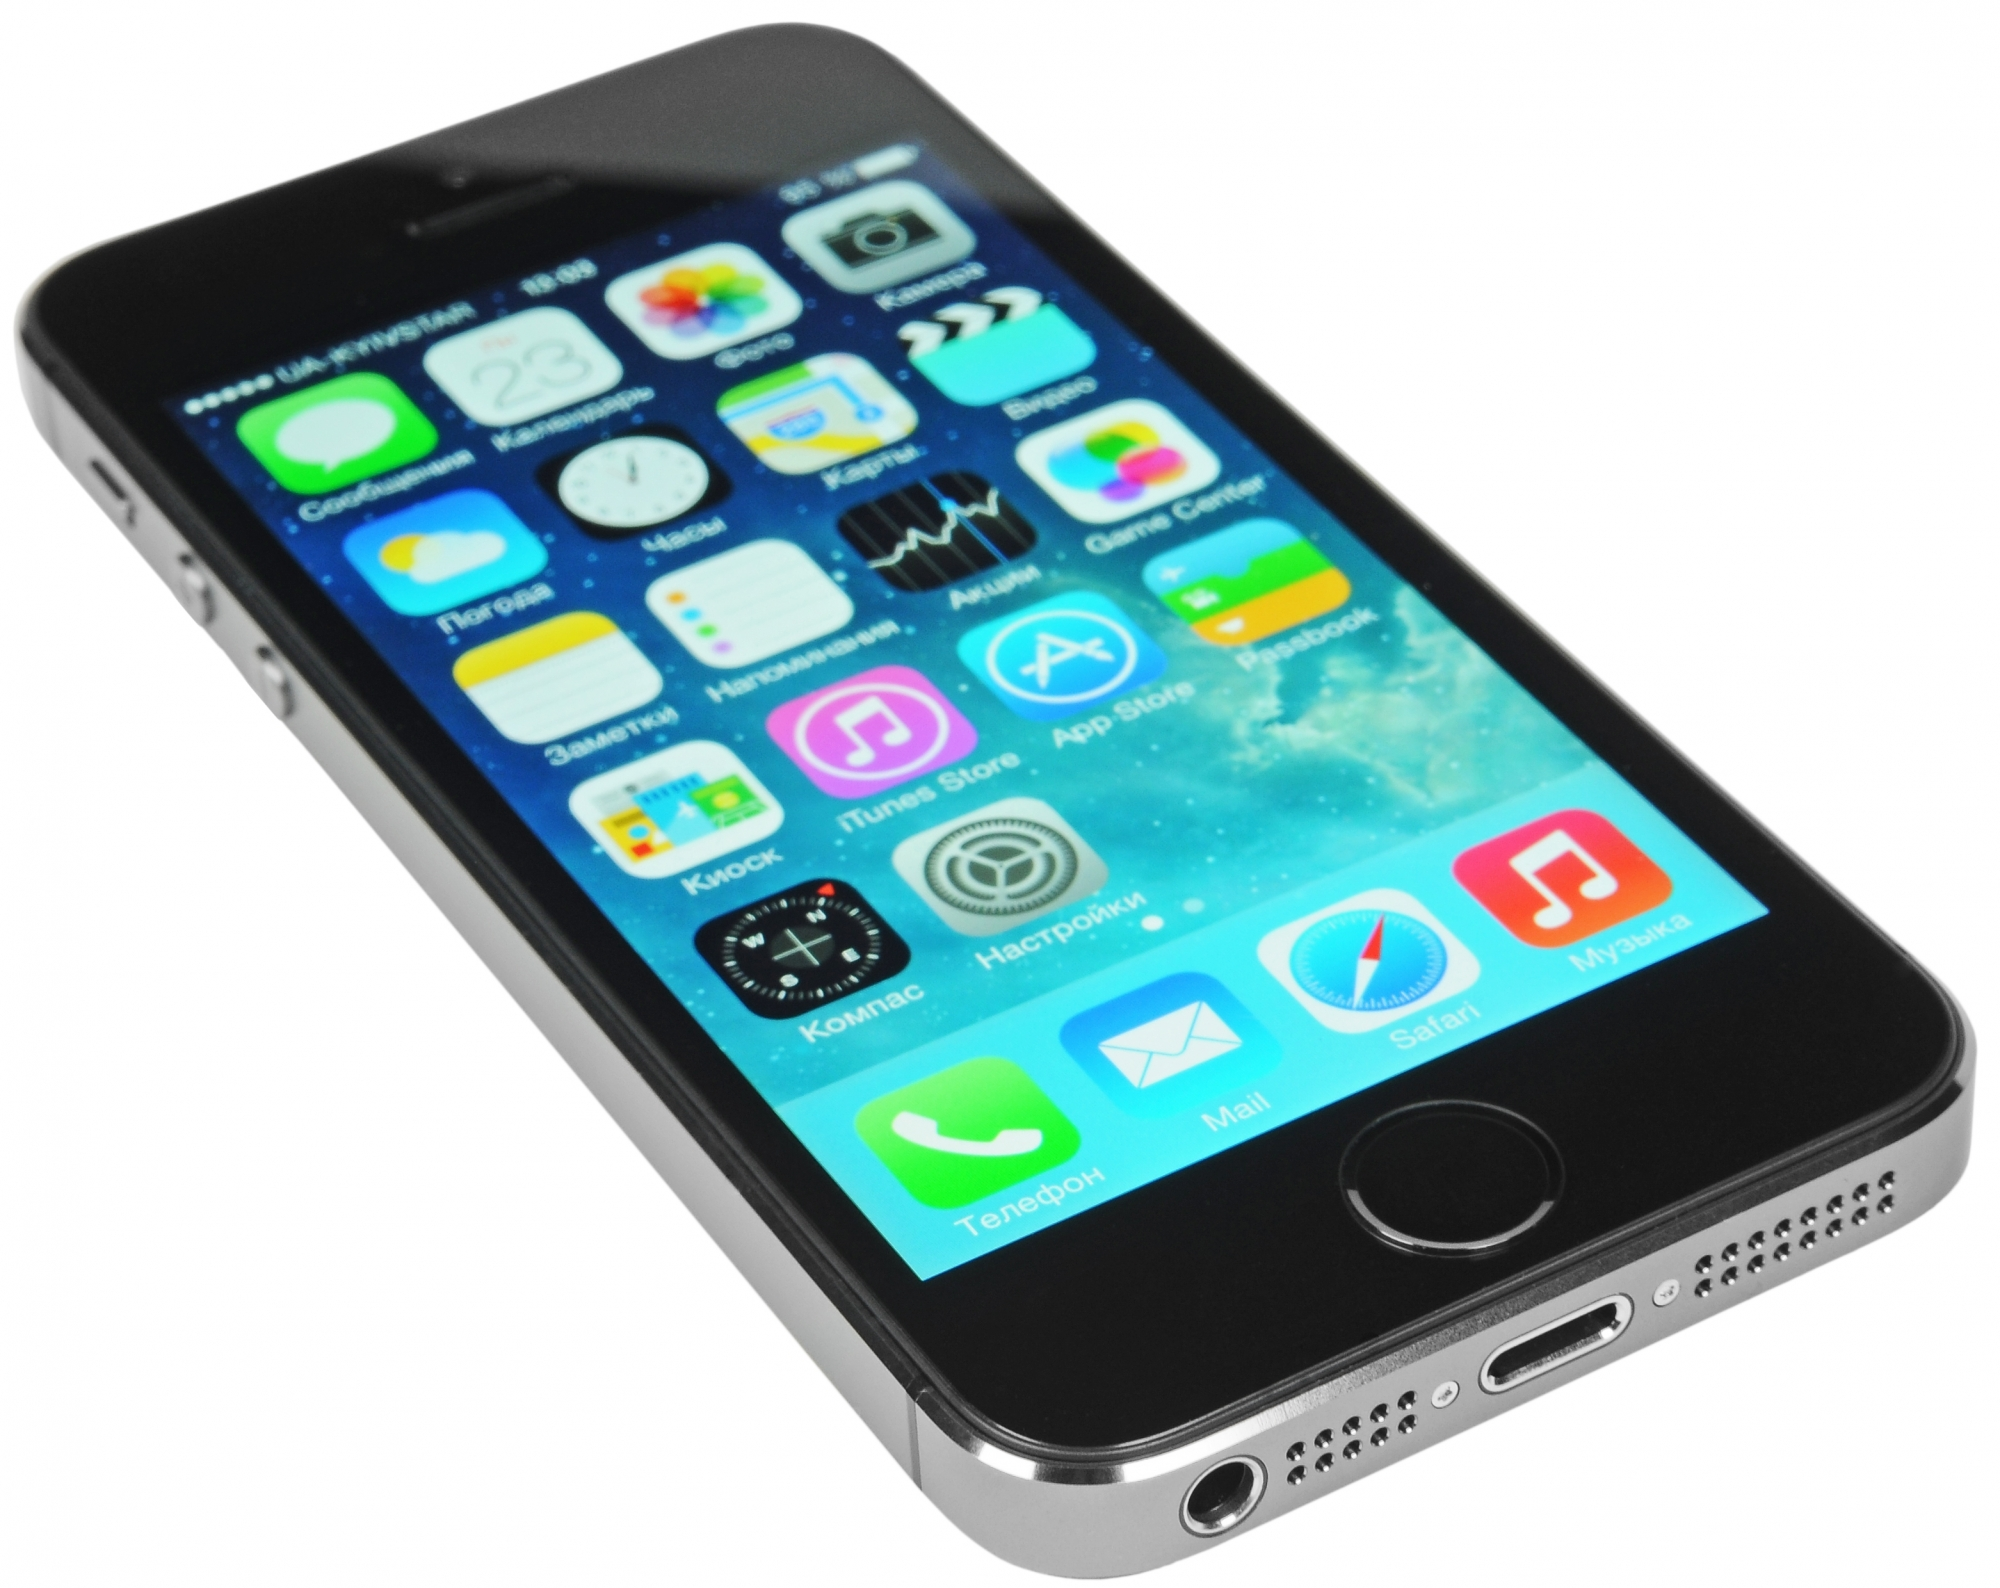 Straight Talk Promo Codes for iPhone 5s 16GB for $149.00